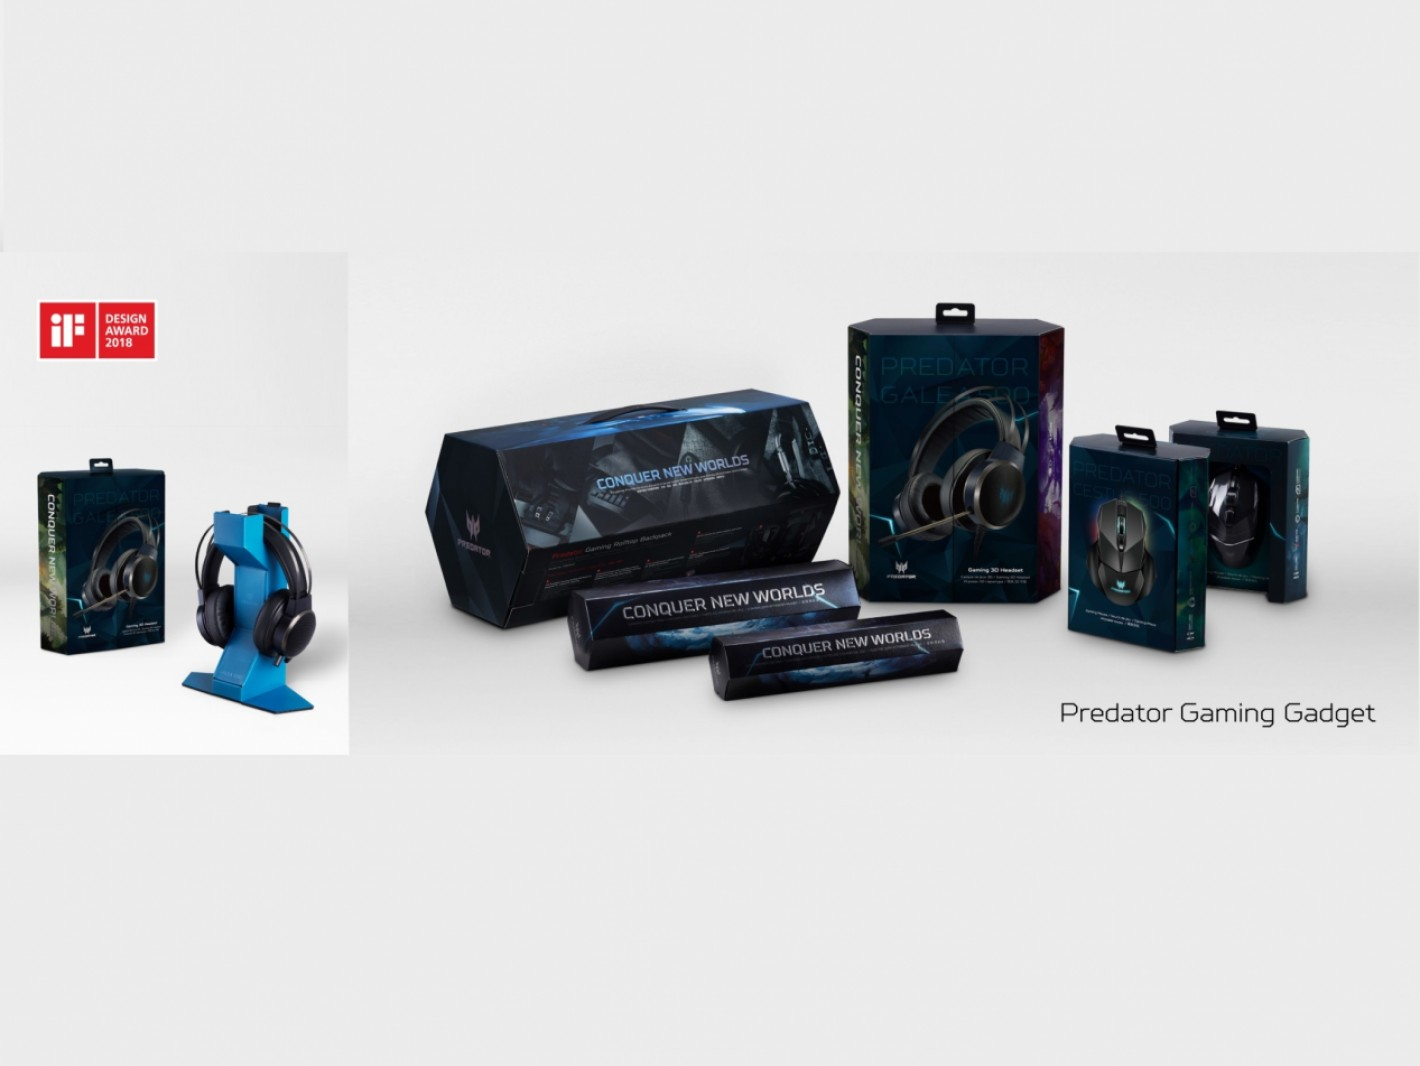 Acer iF Design Award 2018 - Predator Gaming Gadget Packaging